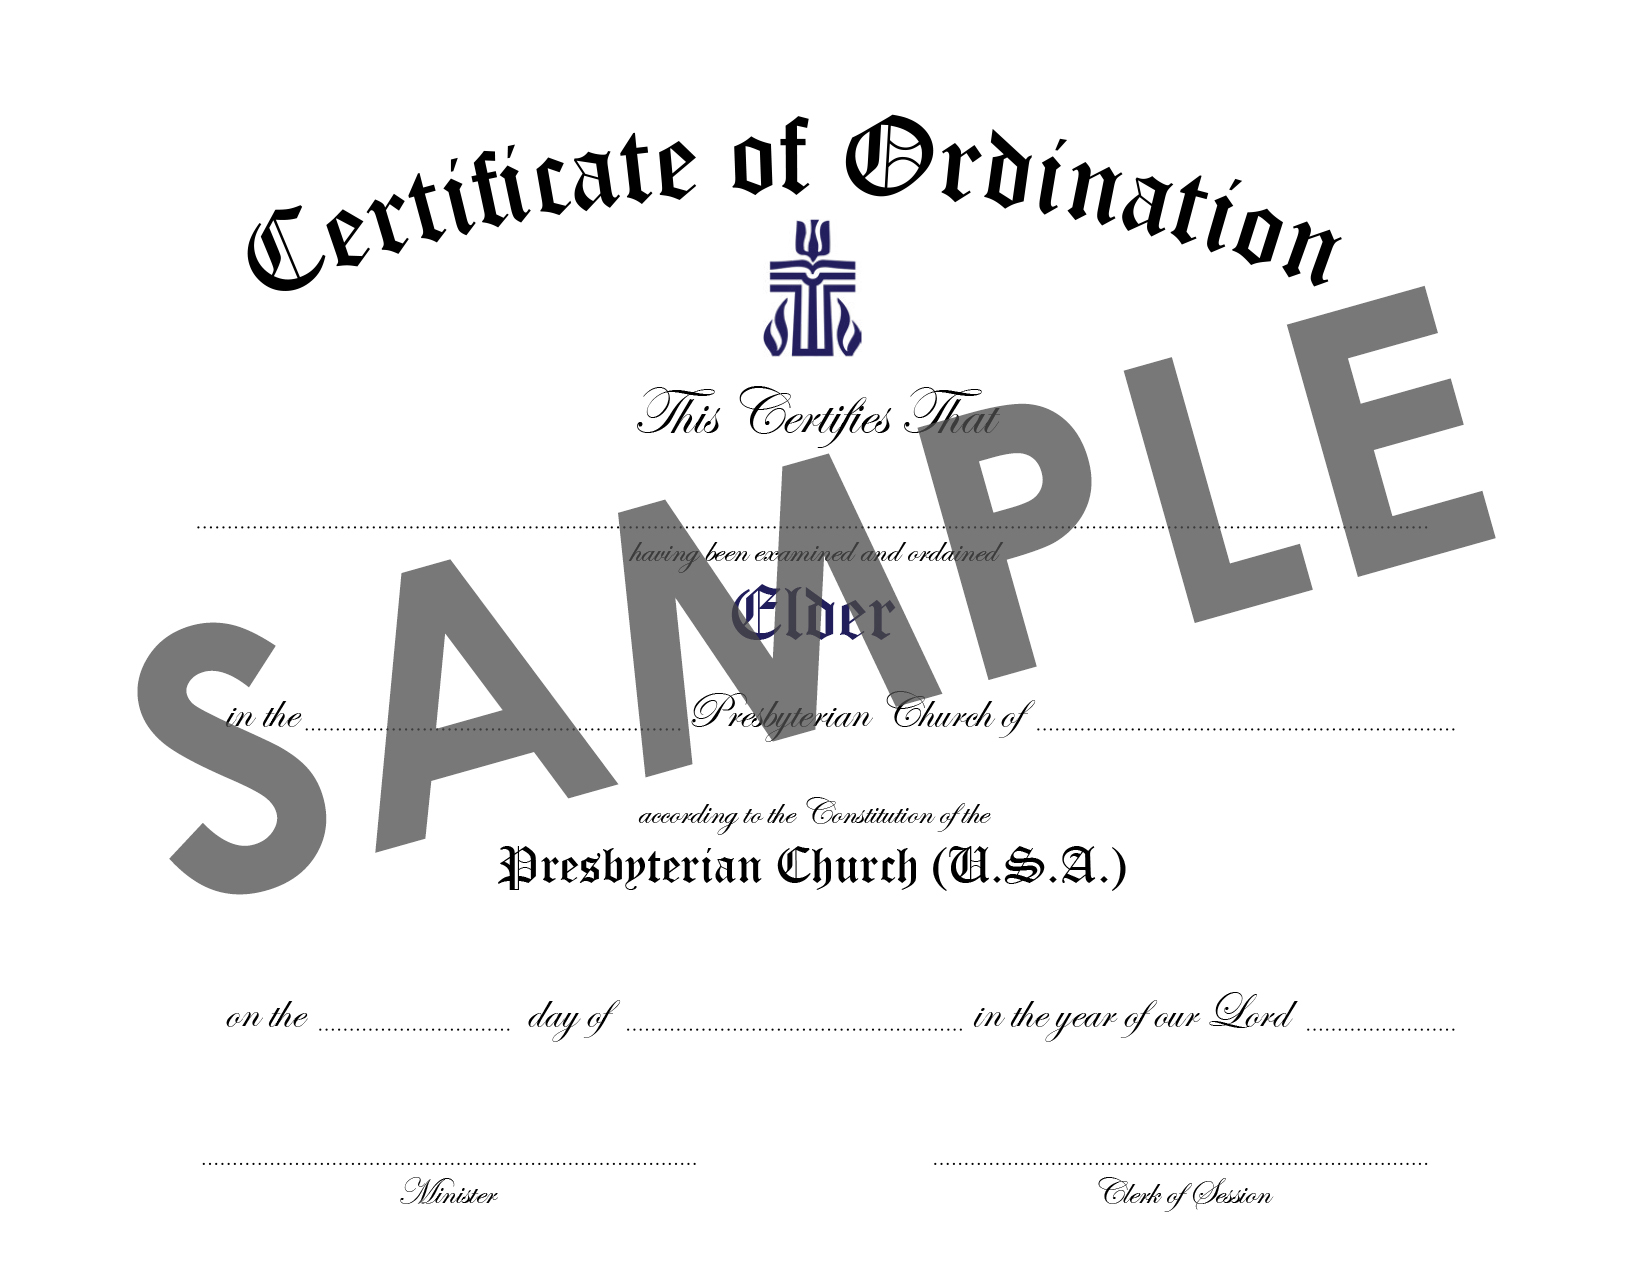 Certificate of Ordination of Elder